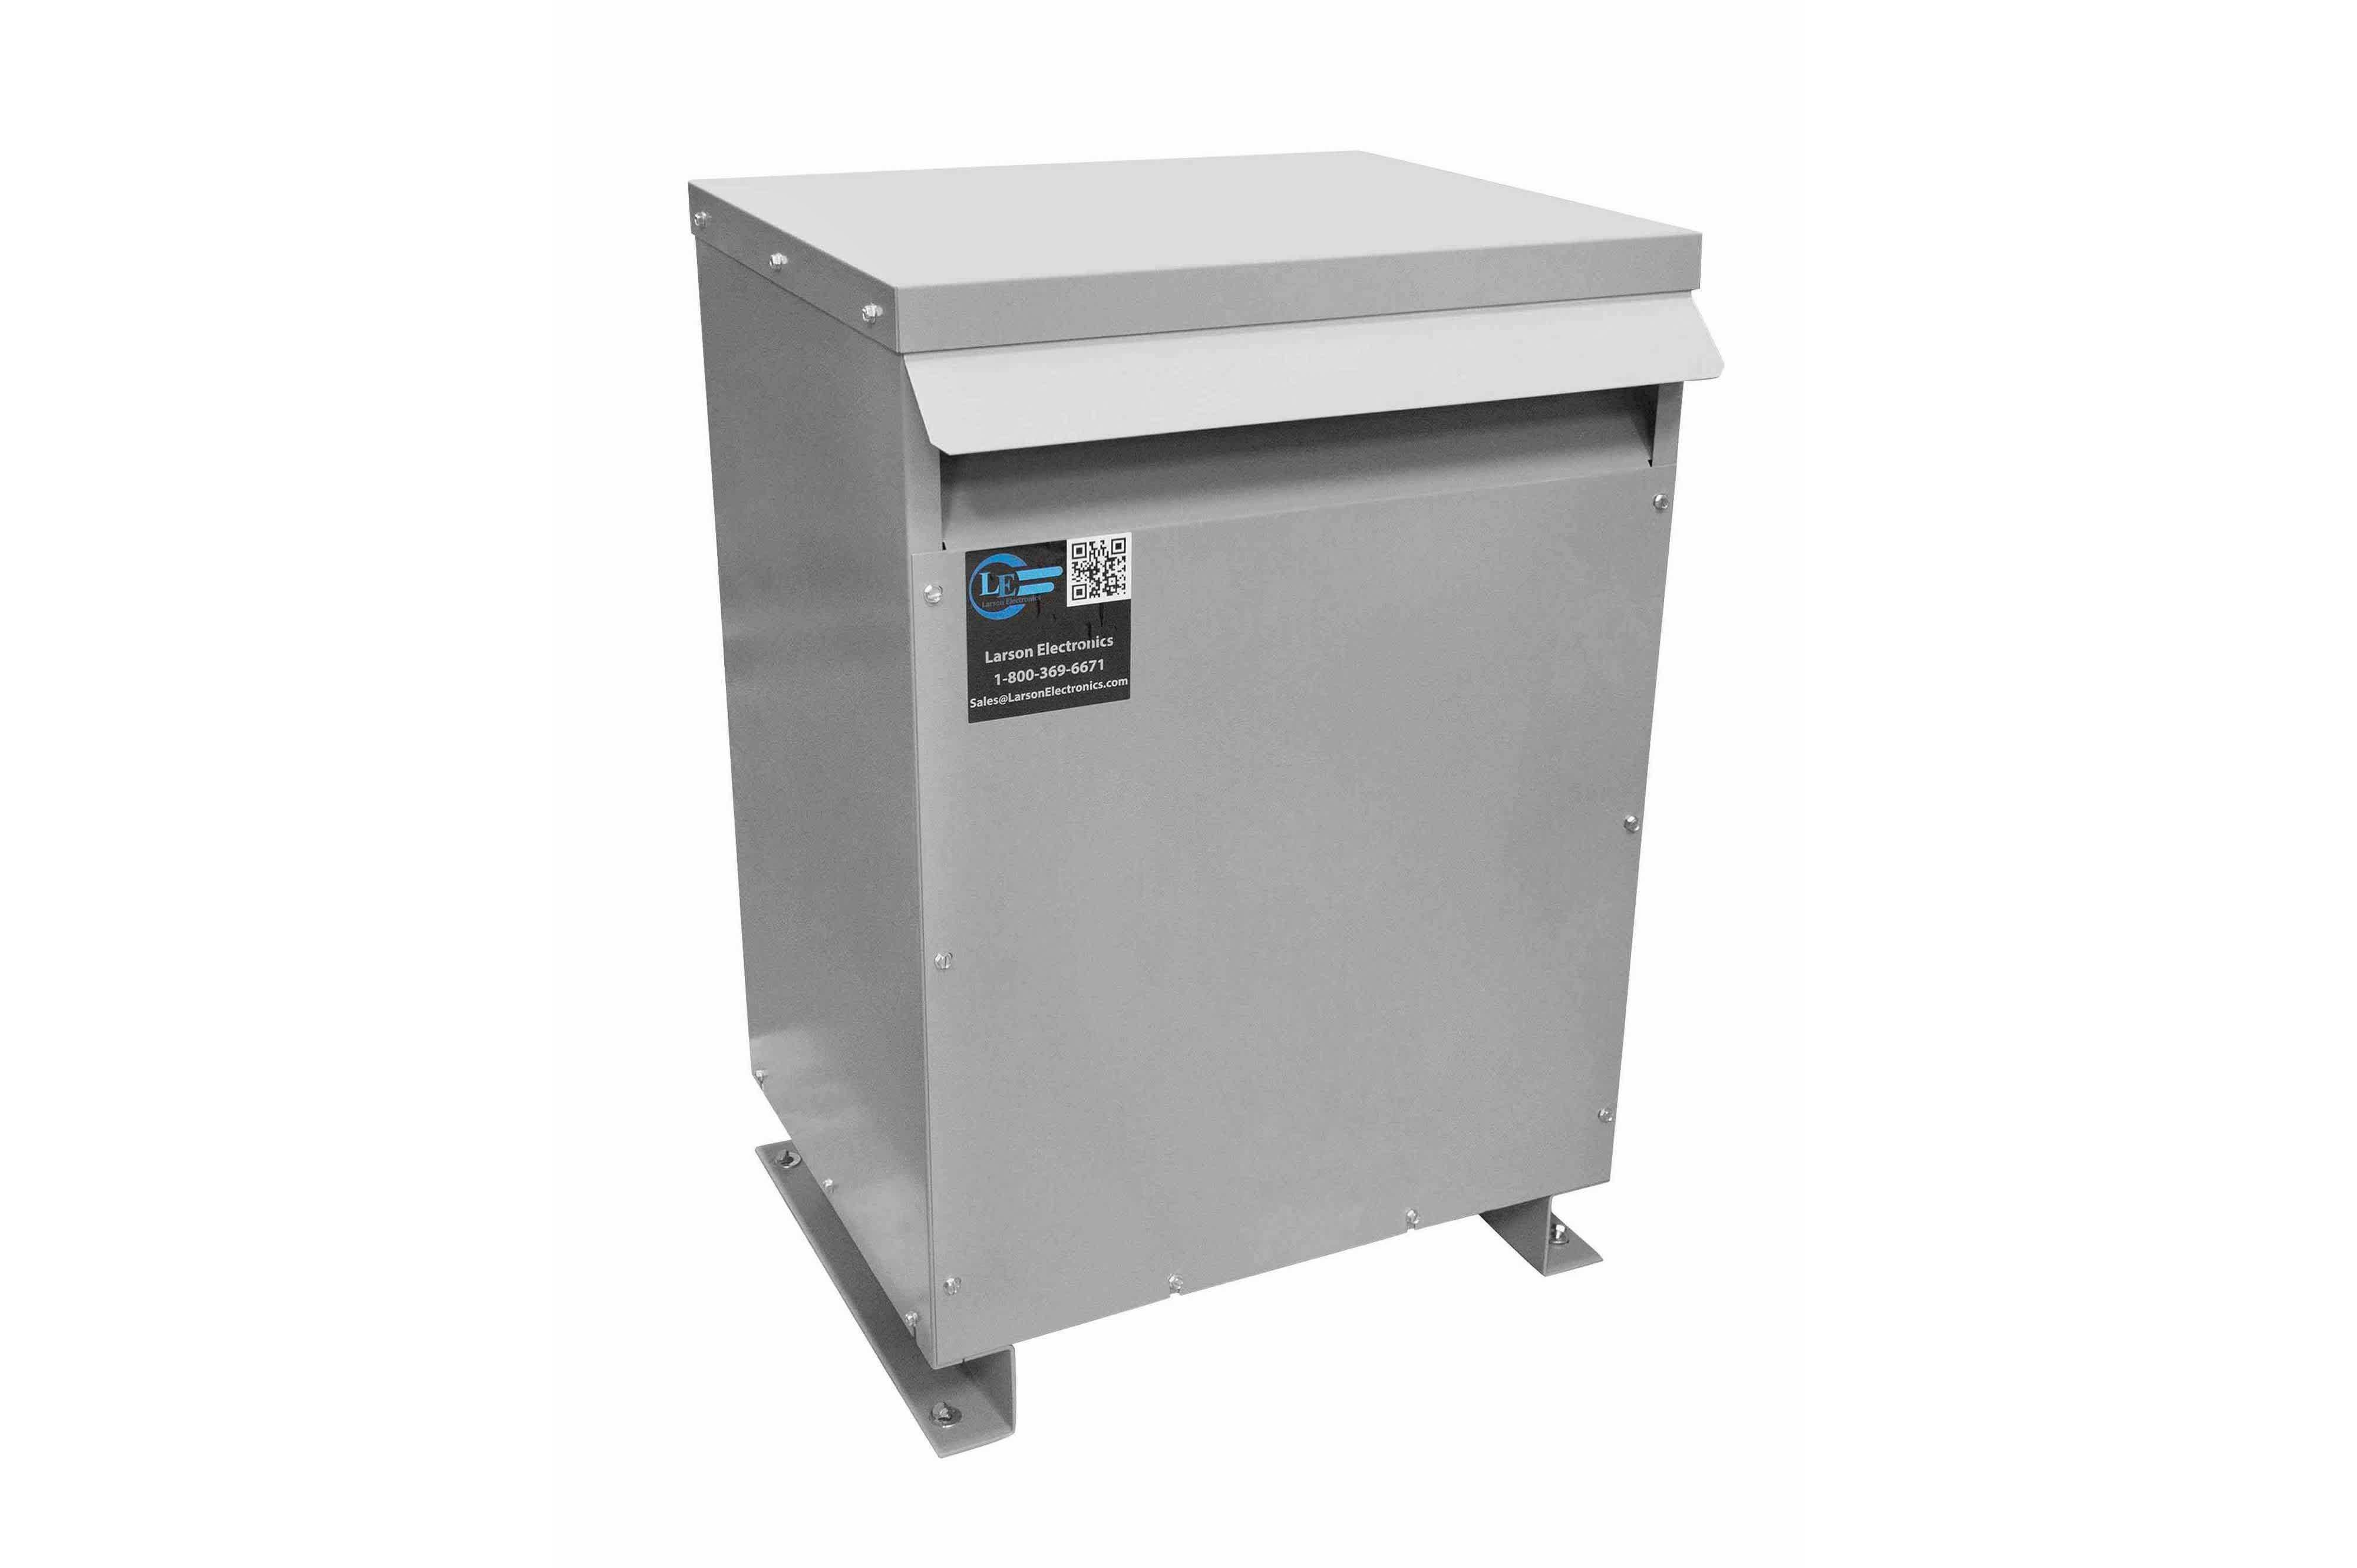 200 kVA 3PH Isolation Transformer, 208V Wye Primary, 600Y/347 Wye-N Secondary, N3R, Ventilated, 60 Hz